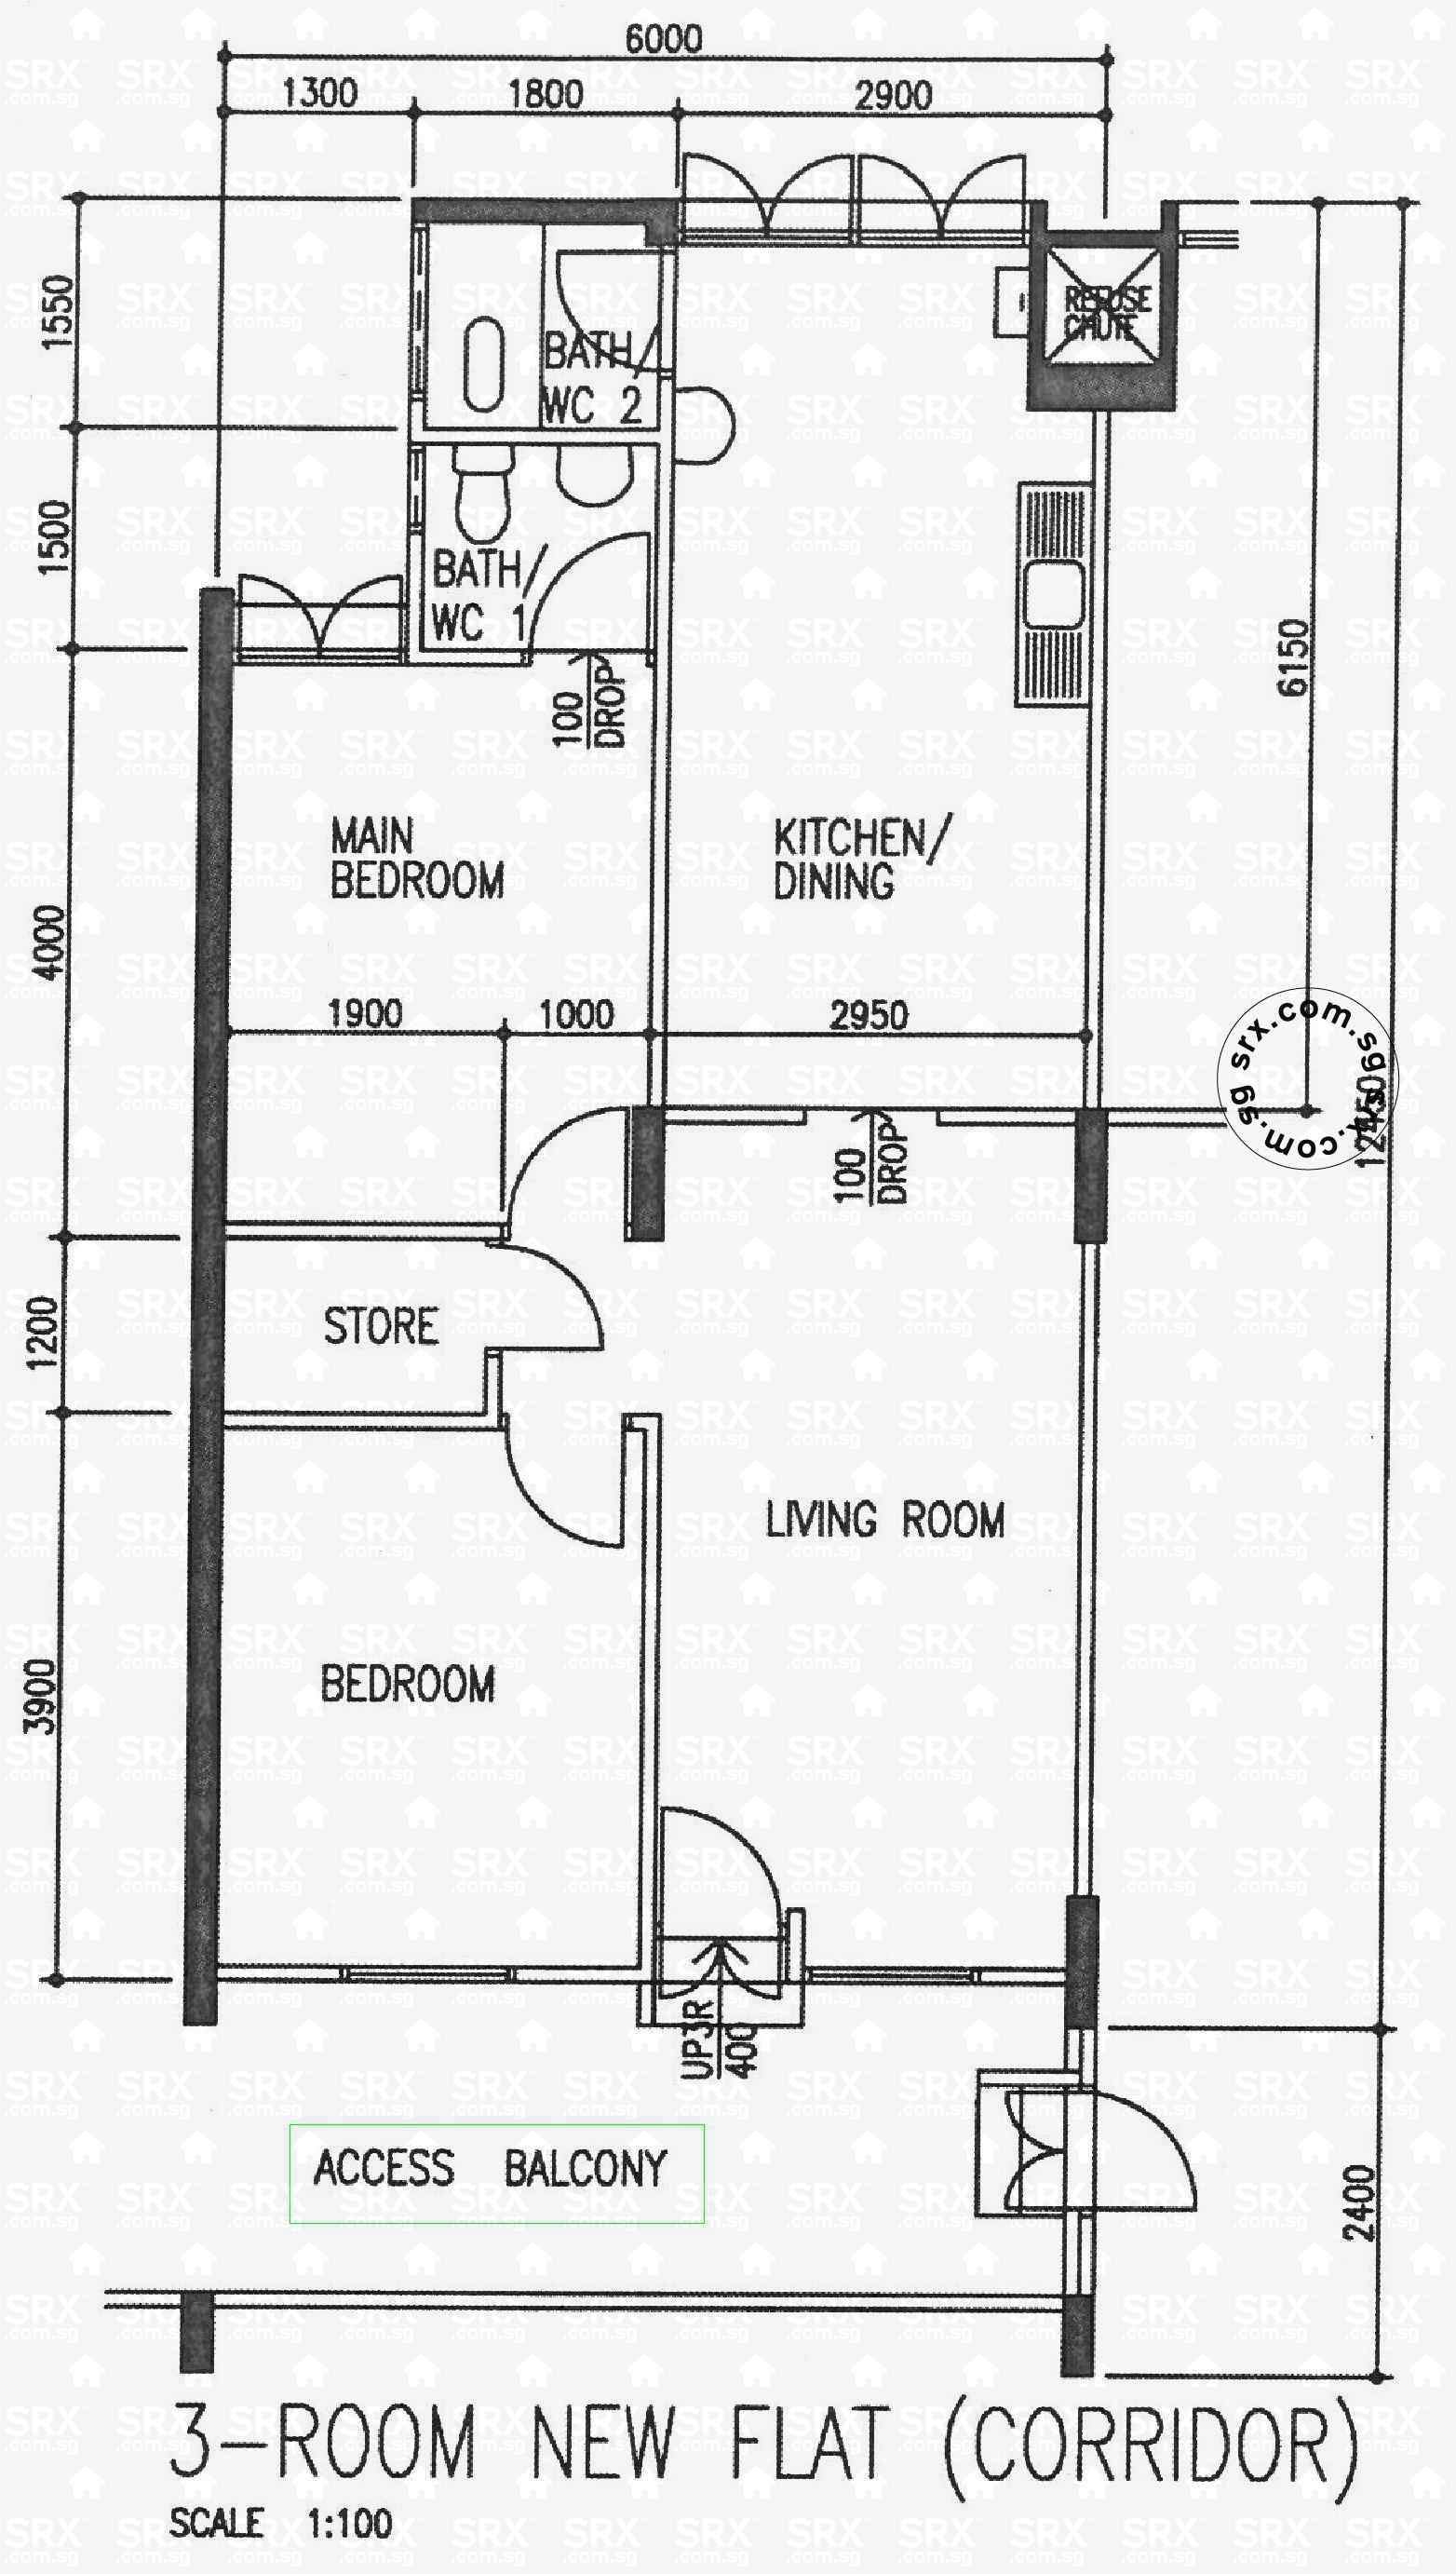 3 room flat floor plan hdb thefloors co for Plan of a flat